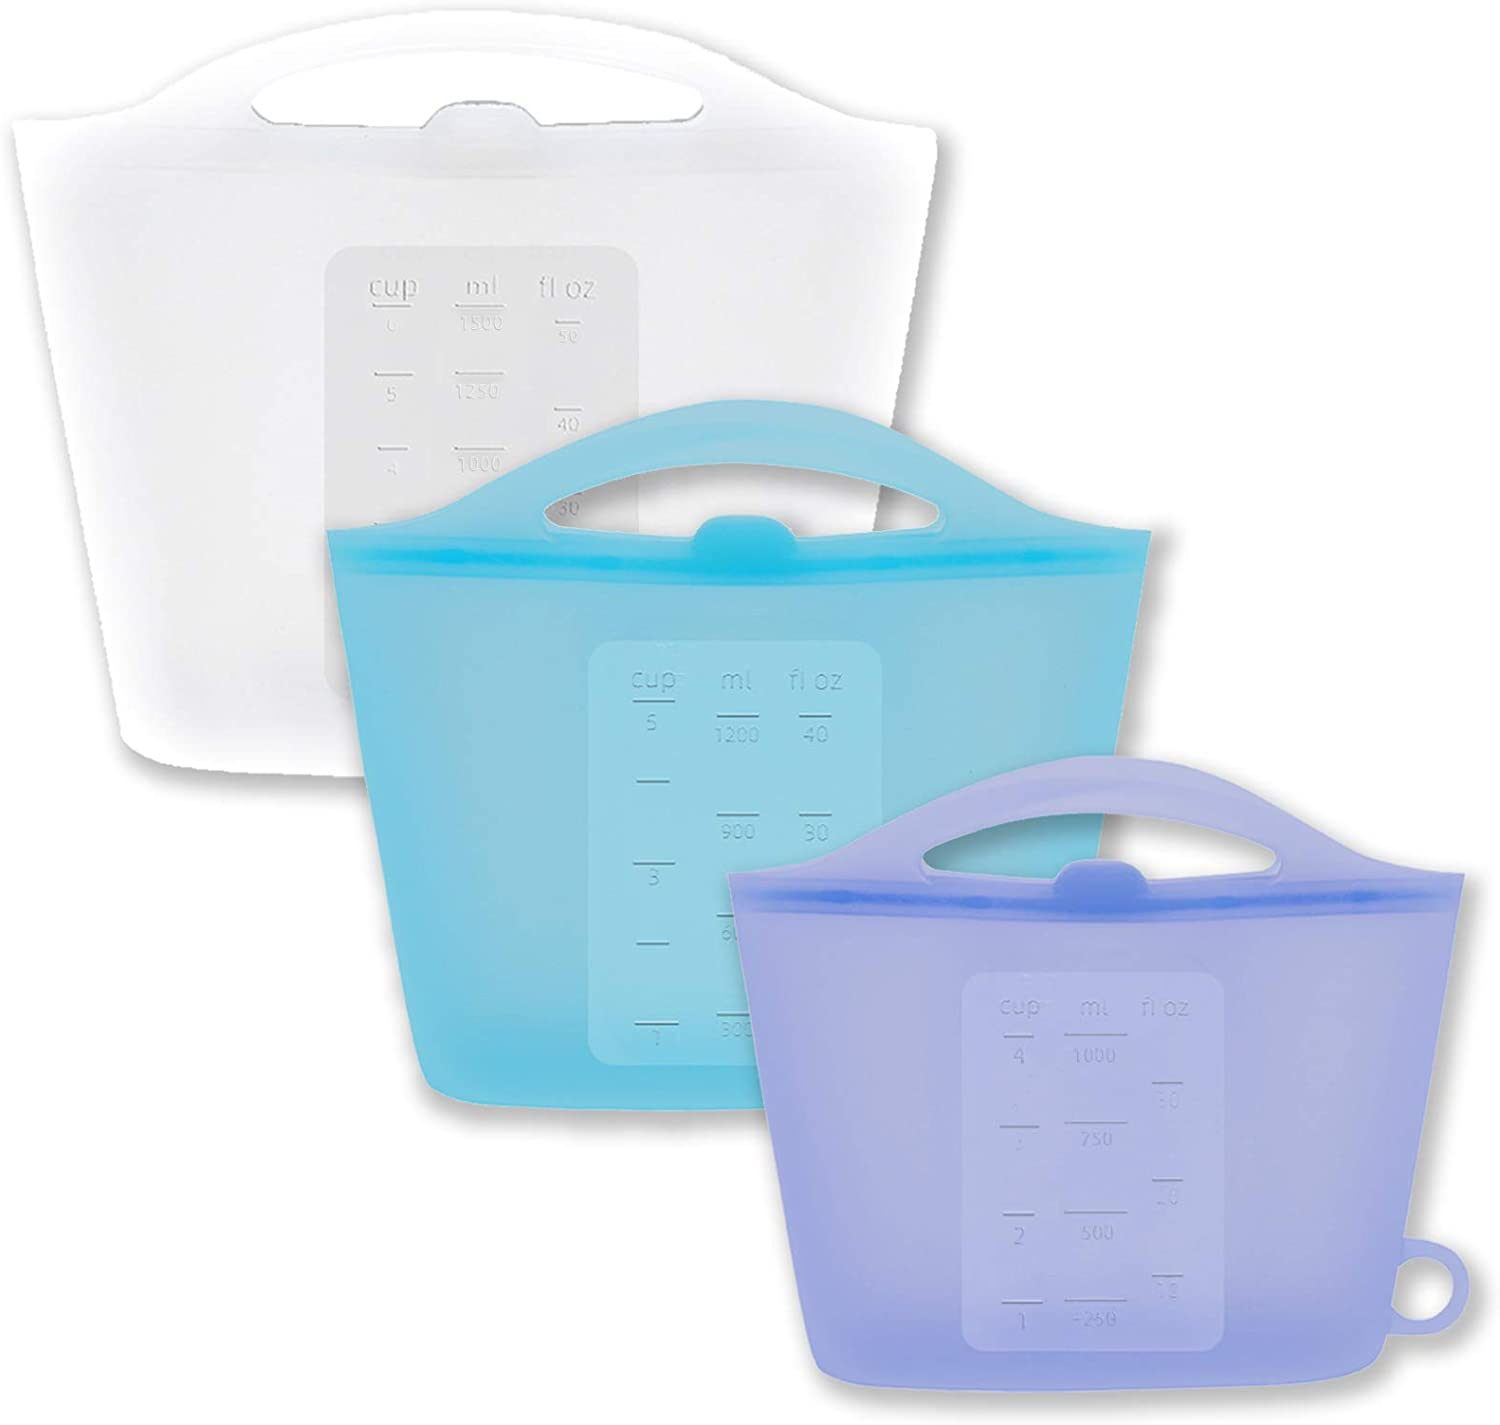 100% Silicone Reusable Food Storage Bags and Containers,Plastic Free Lunch Bag,Stand Up Preservation Bag, for Cook, Store, Sous Vide, or Freeze (1500ml,1200ml,1000ml, White,Blue,Purple)